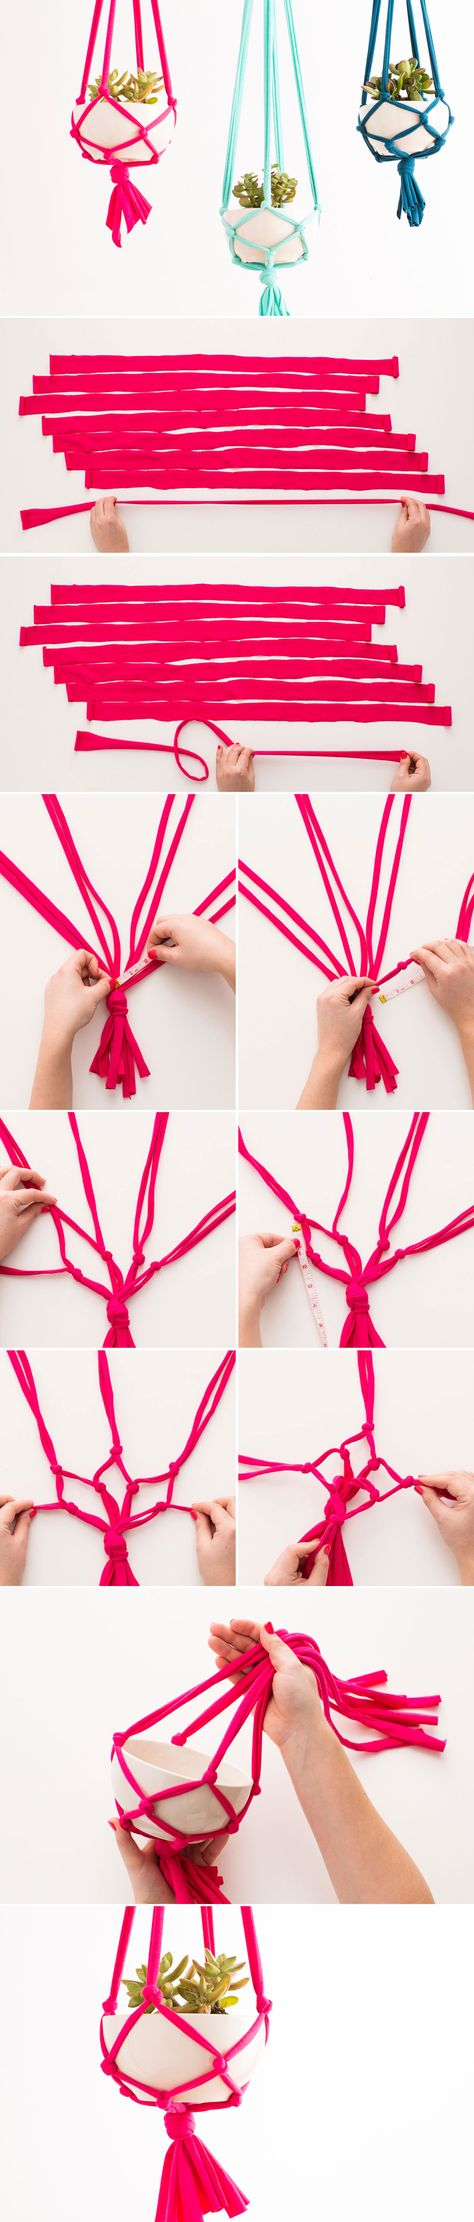 DIY your own macrame hanging vase with this tutorial. Use Hemptique hemp ropes for the best quality. #jasenhemp